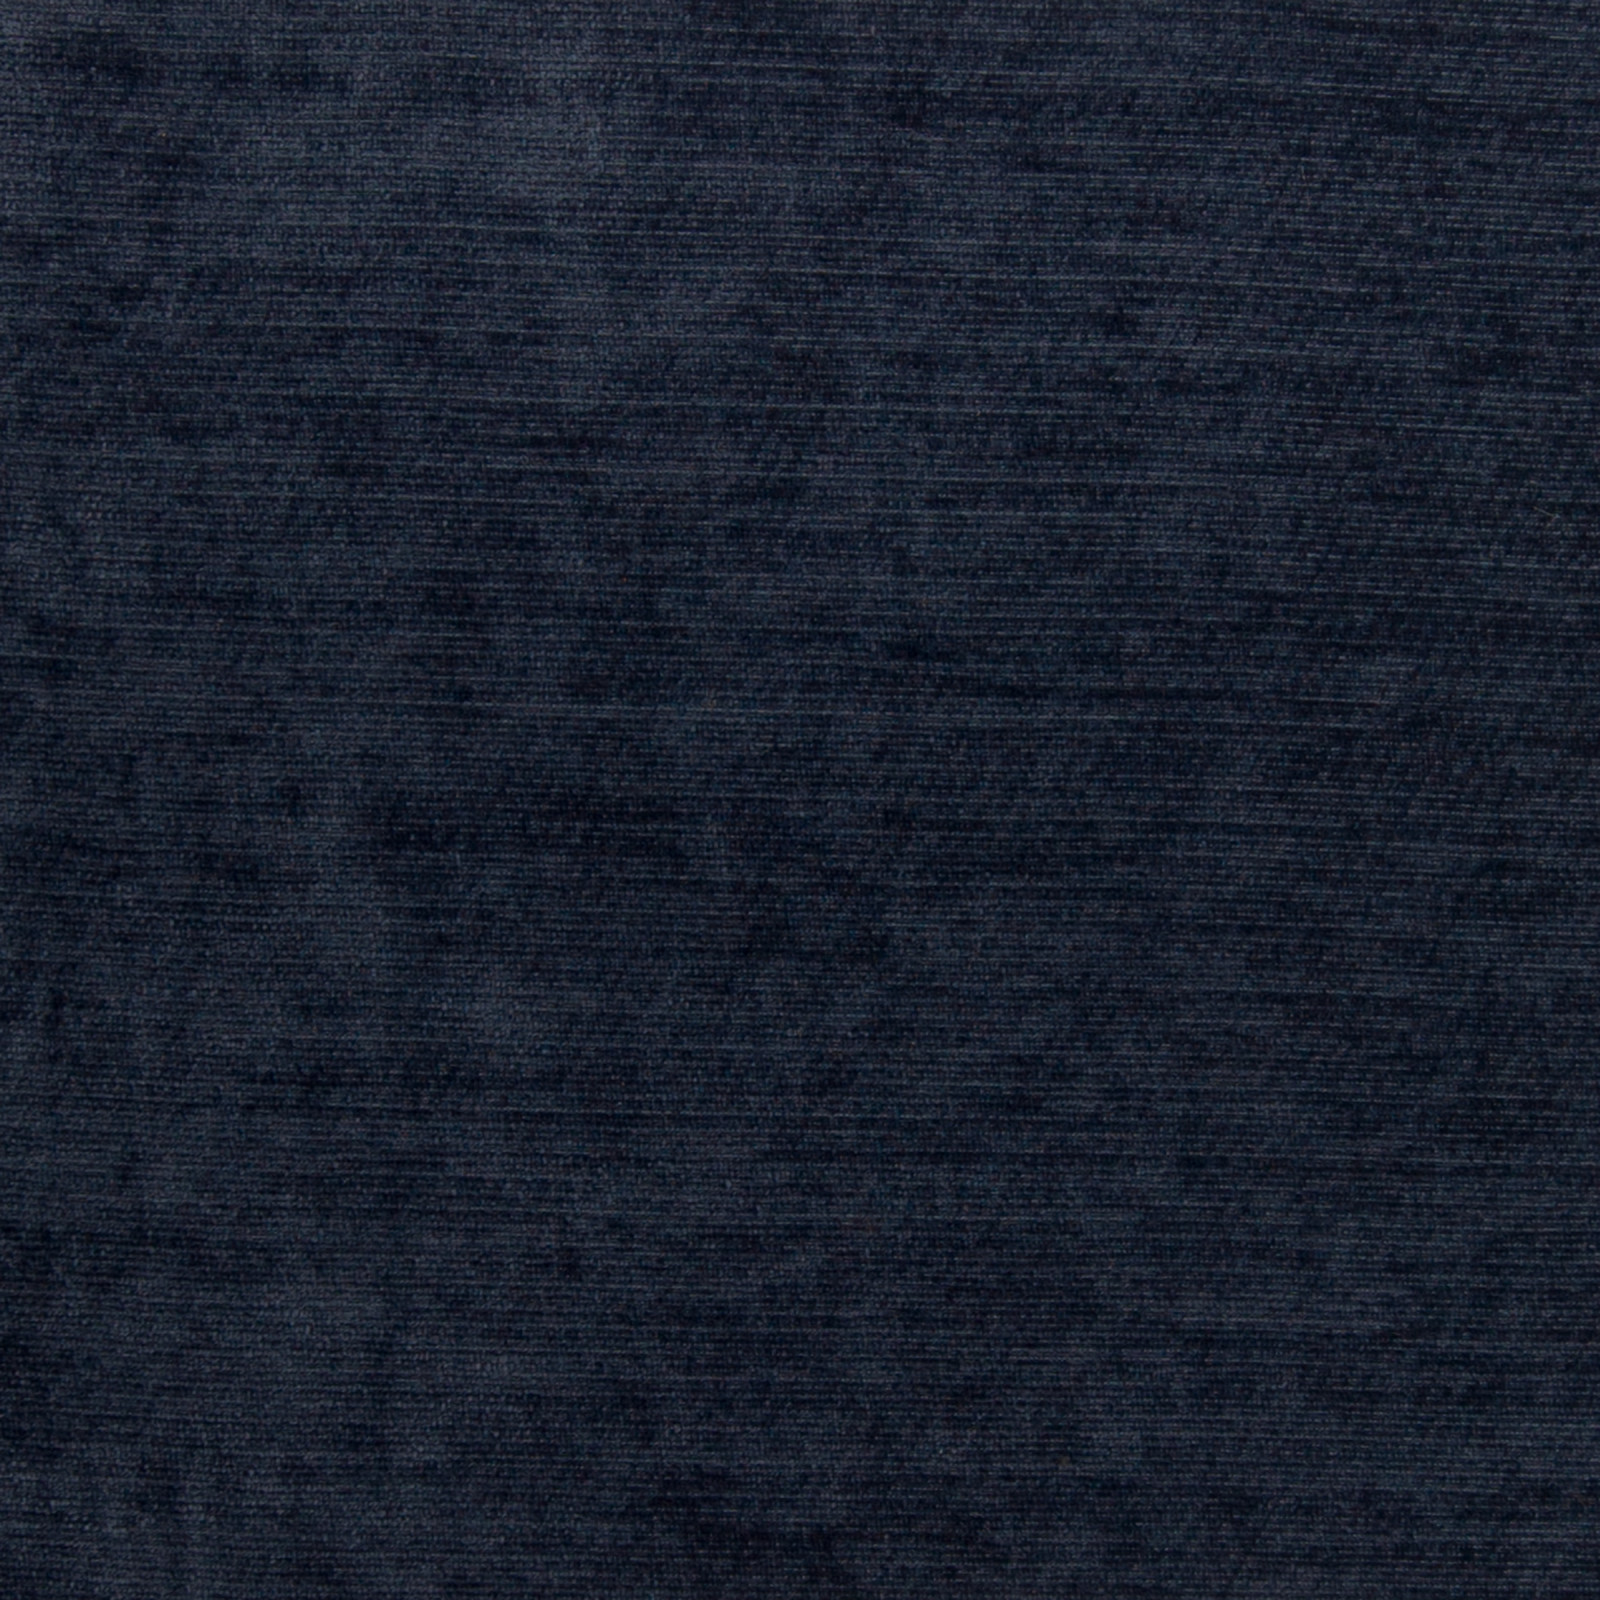 navy blue solid chenille upholstery fabric. Black Bedroom Furniture Sets. Home Design Ideas